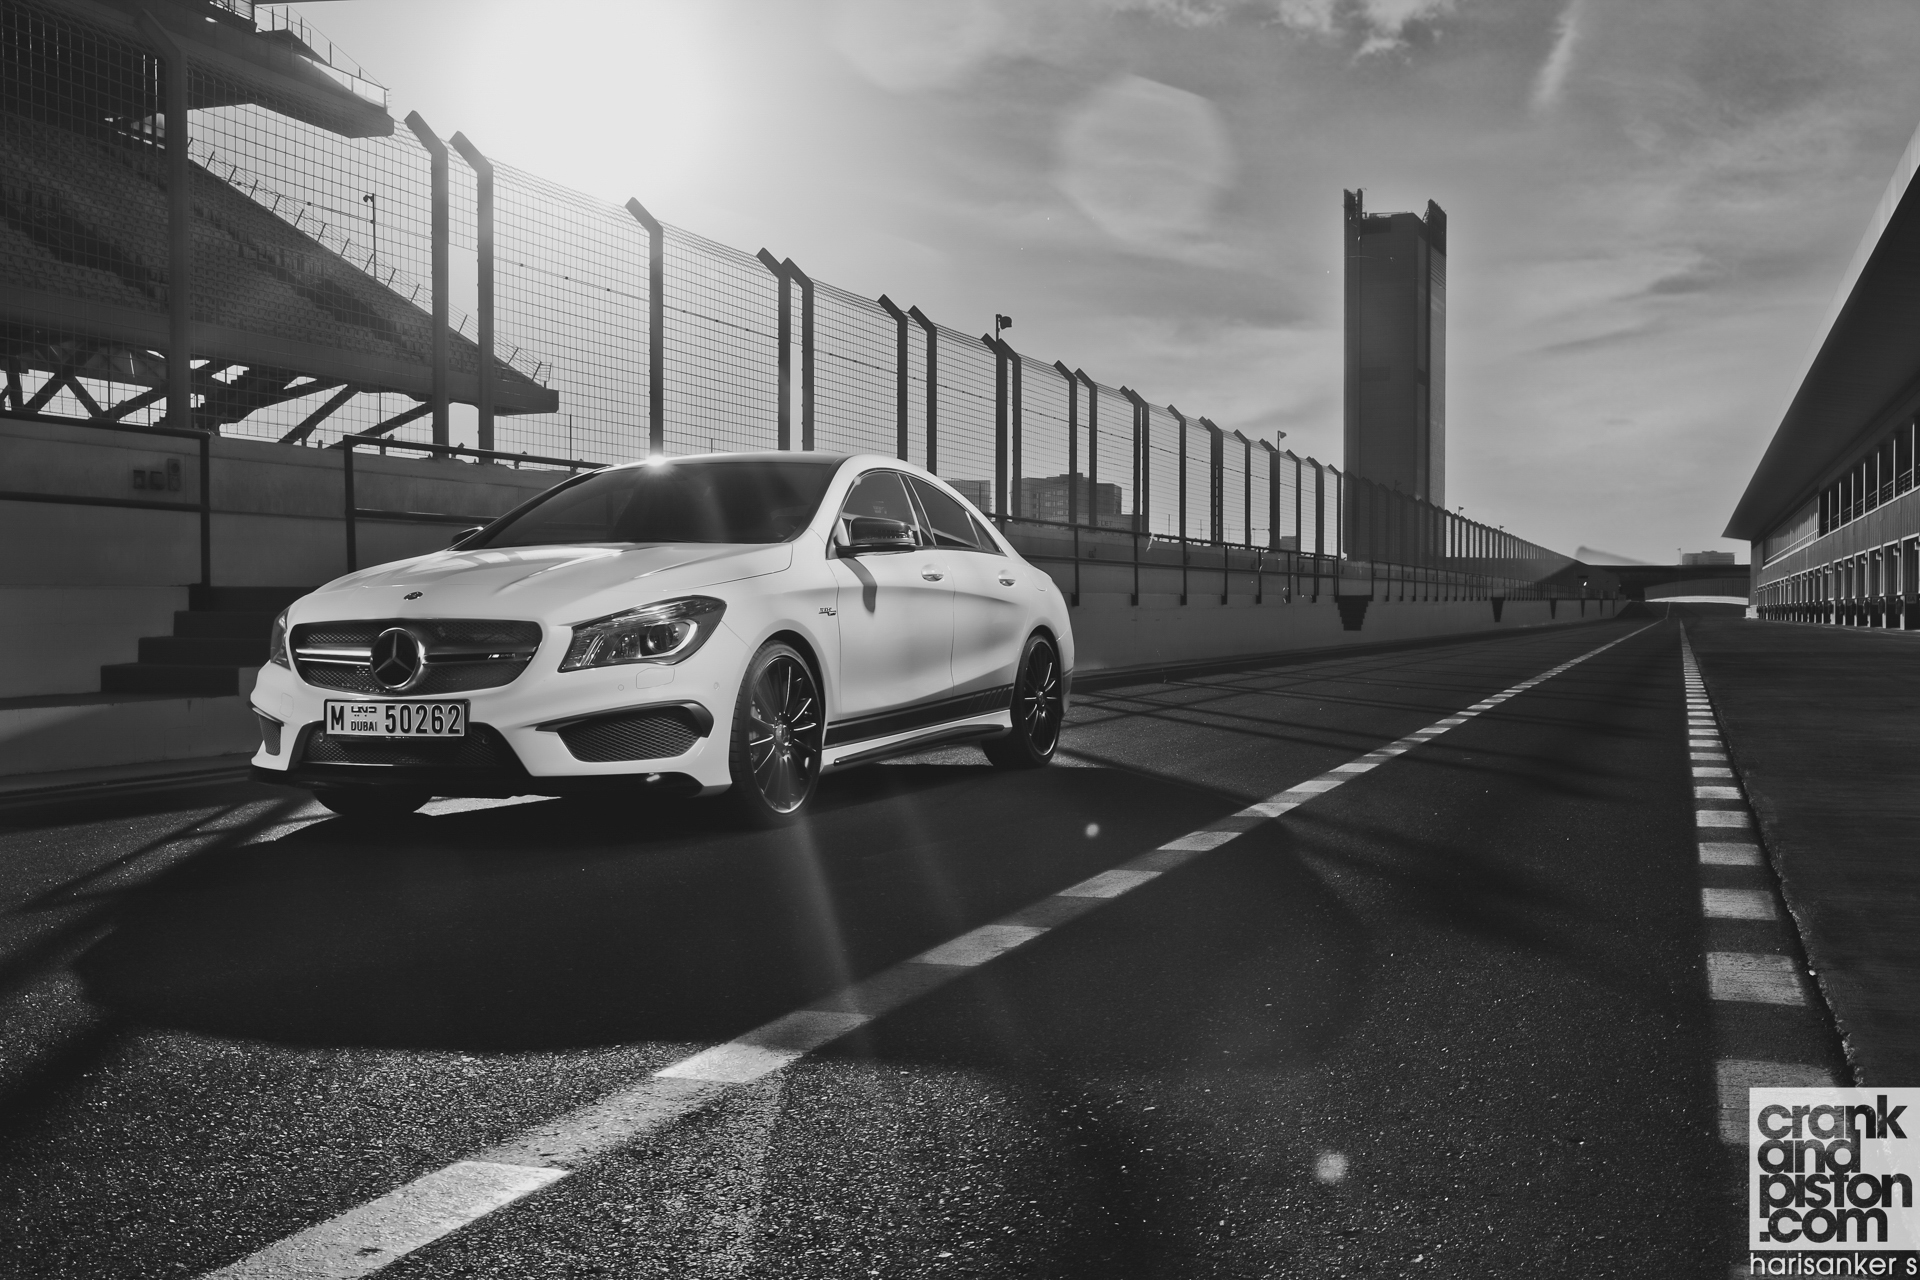 Mercedes Benz CLA 45 AMG crankandpiston wallpapers 04 1920x1280